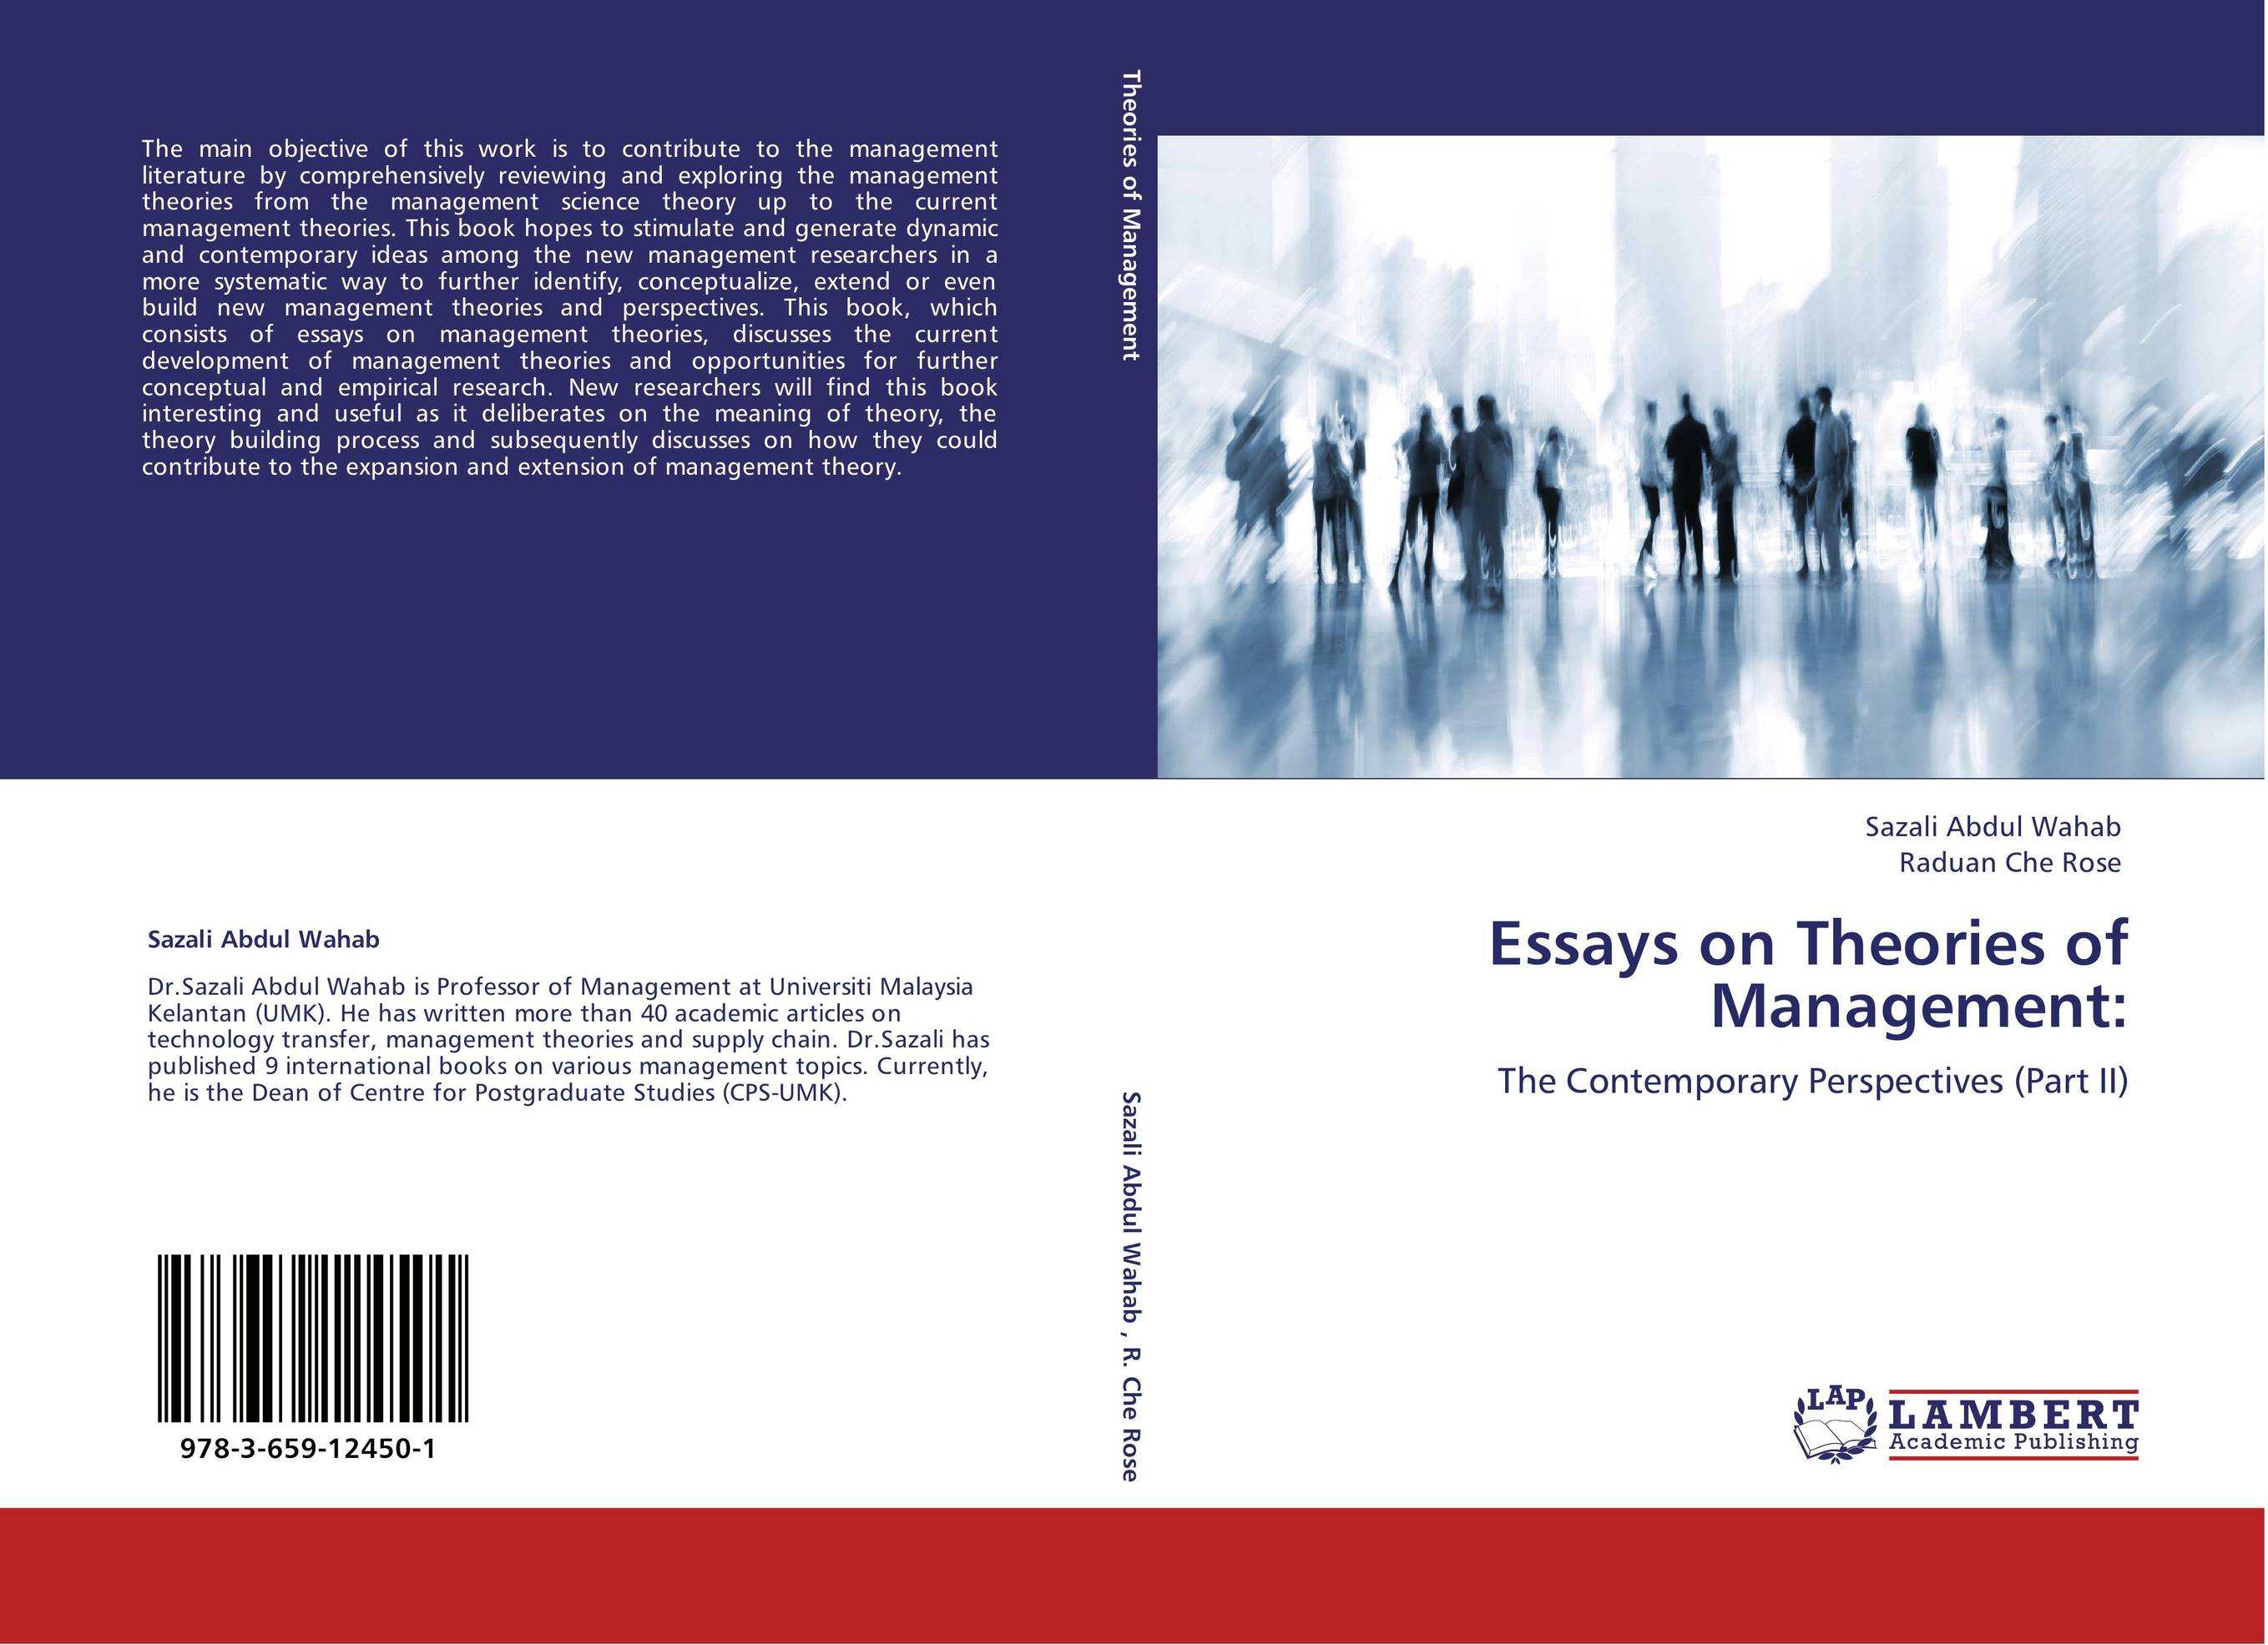 contemporary change management theories It can be argued that the successful management of change is crucial to any organisation in order to survive and succeed in the present highly competitive and continuously evolving business environment however, theories and approaches to change.